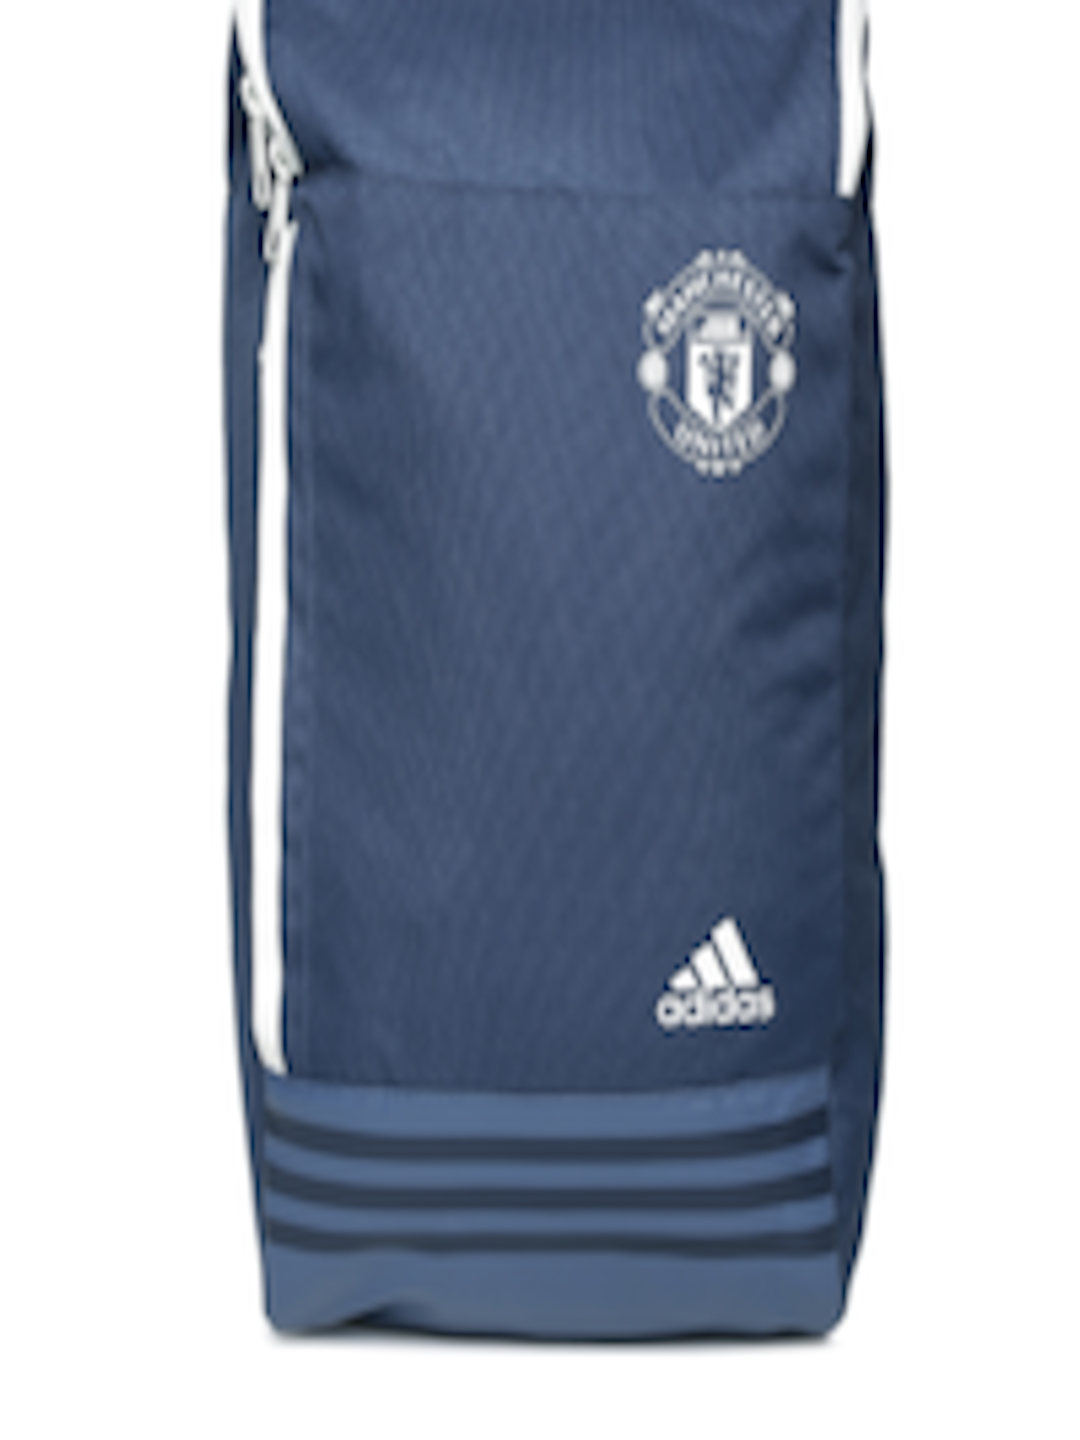 e68abe9cbe Buy ADIDAS Unisex Navy Manchester United F.C. Backpack - Backpacks for  Unisex 1504676